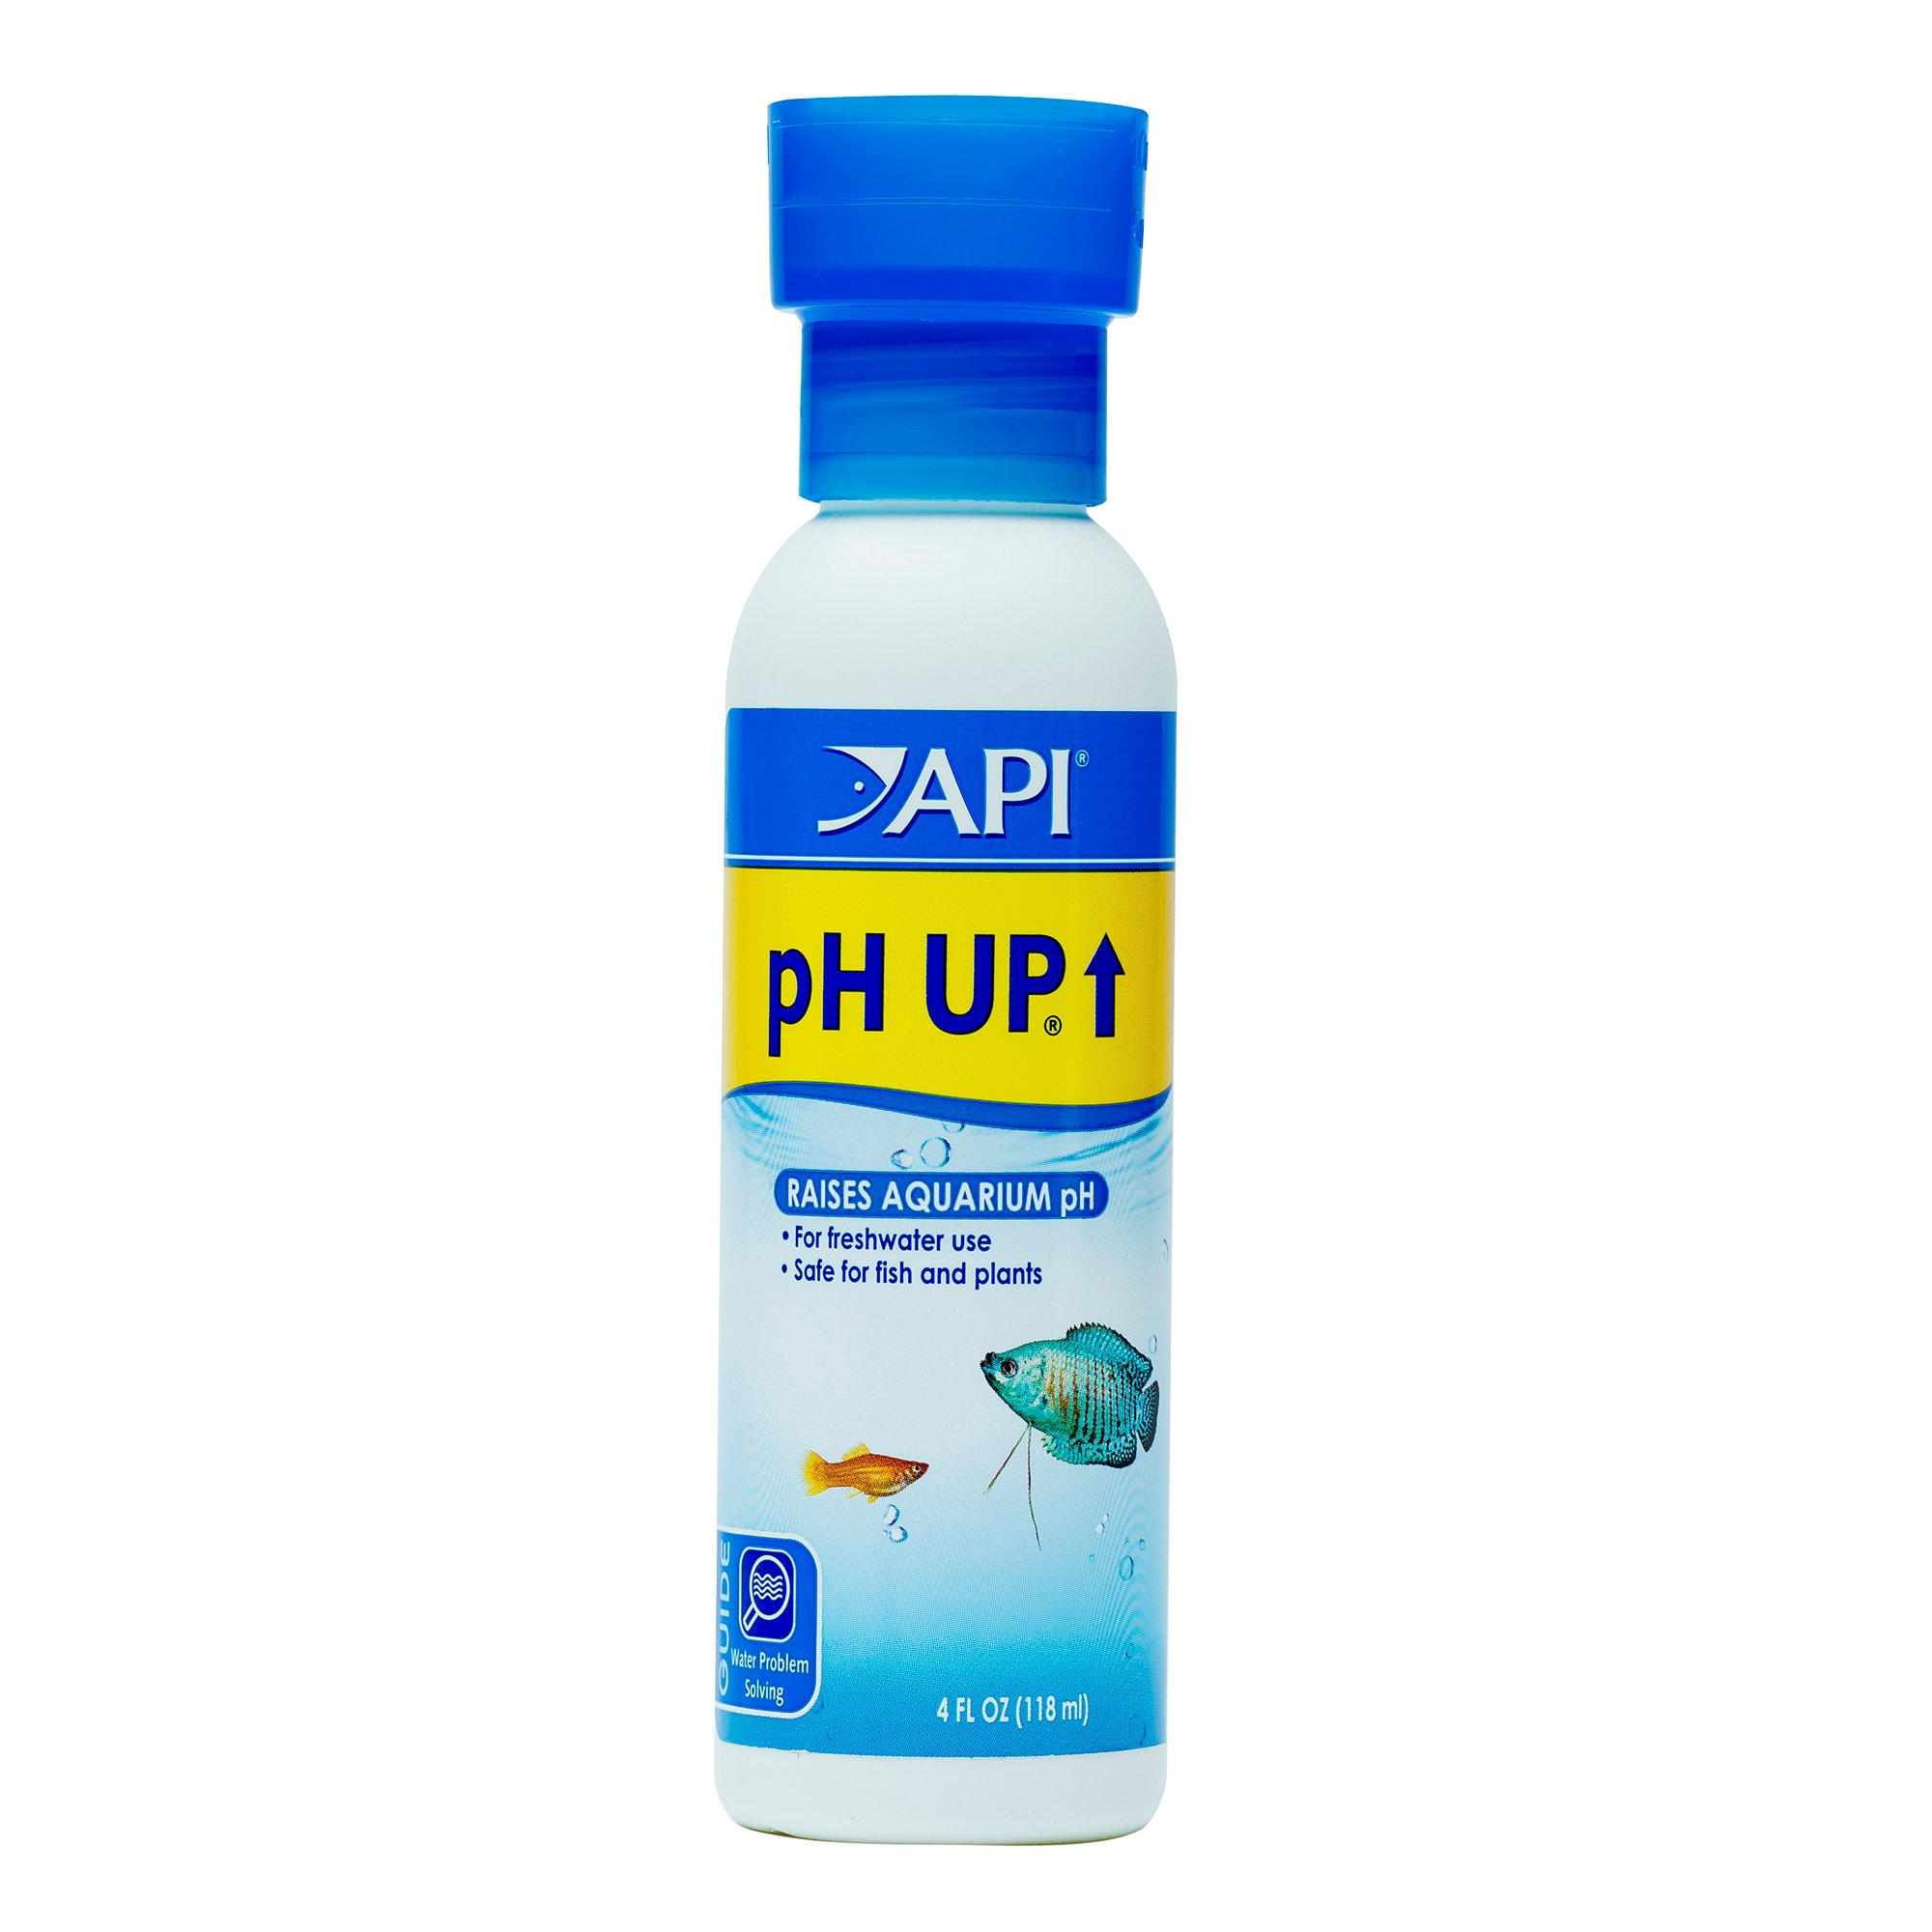 Api ph up freshwater aquarium water ph raising solution for How to raise ph in fish tank